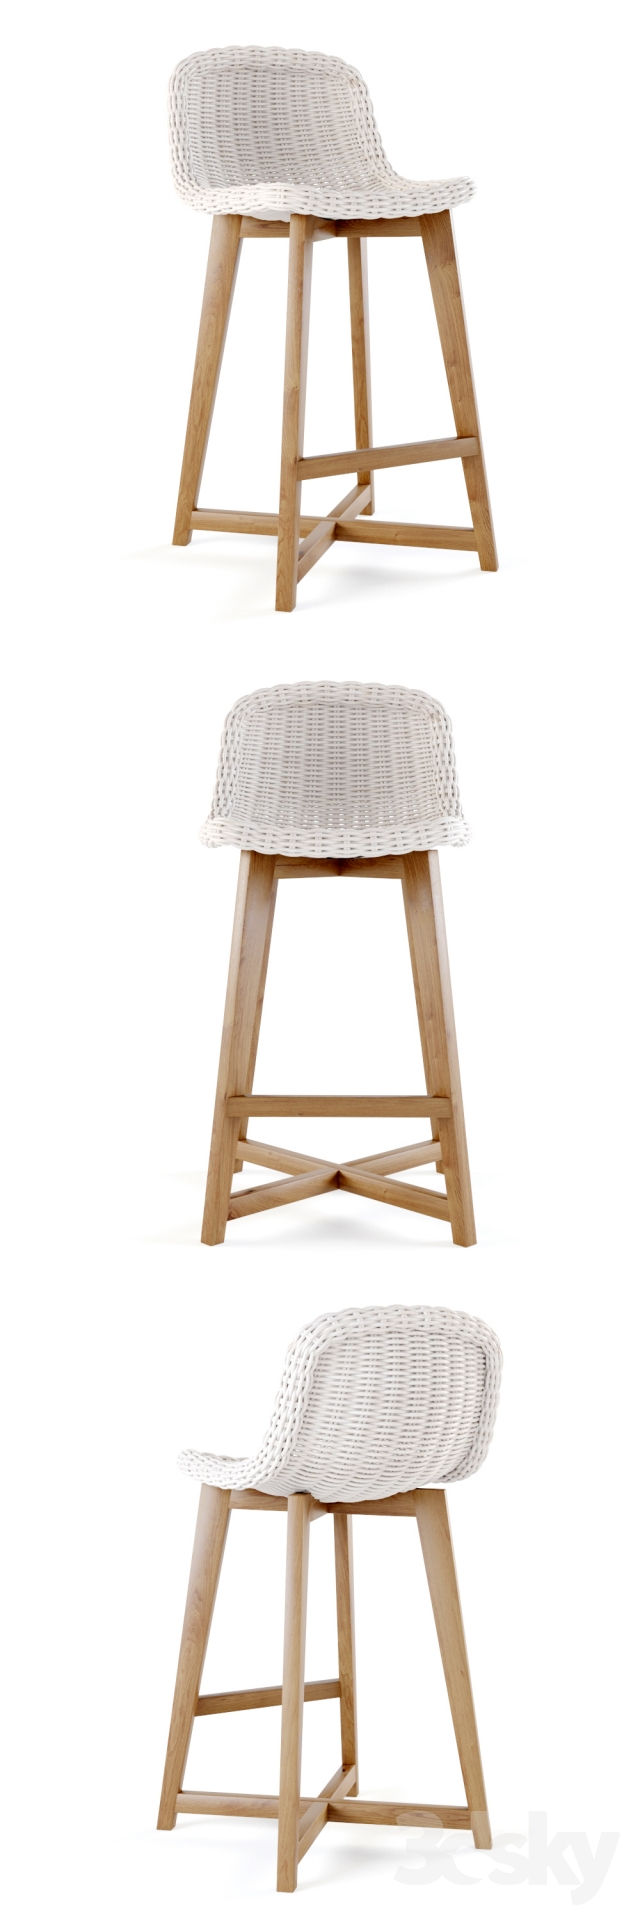 3d Models Chair S2dio Wood And Resin High Chair Norway